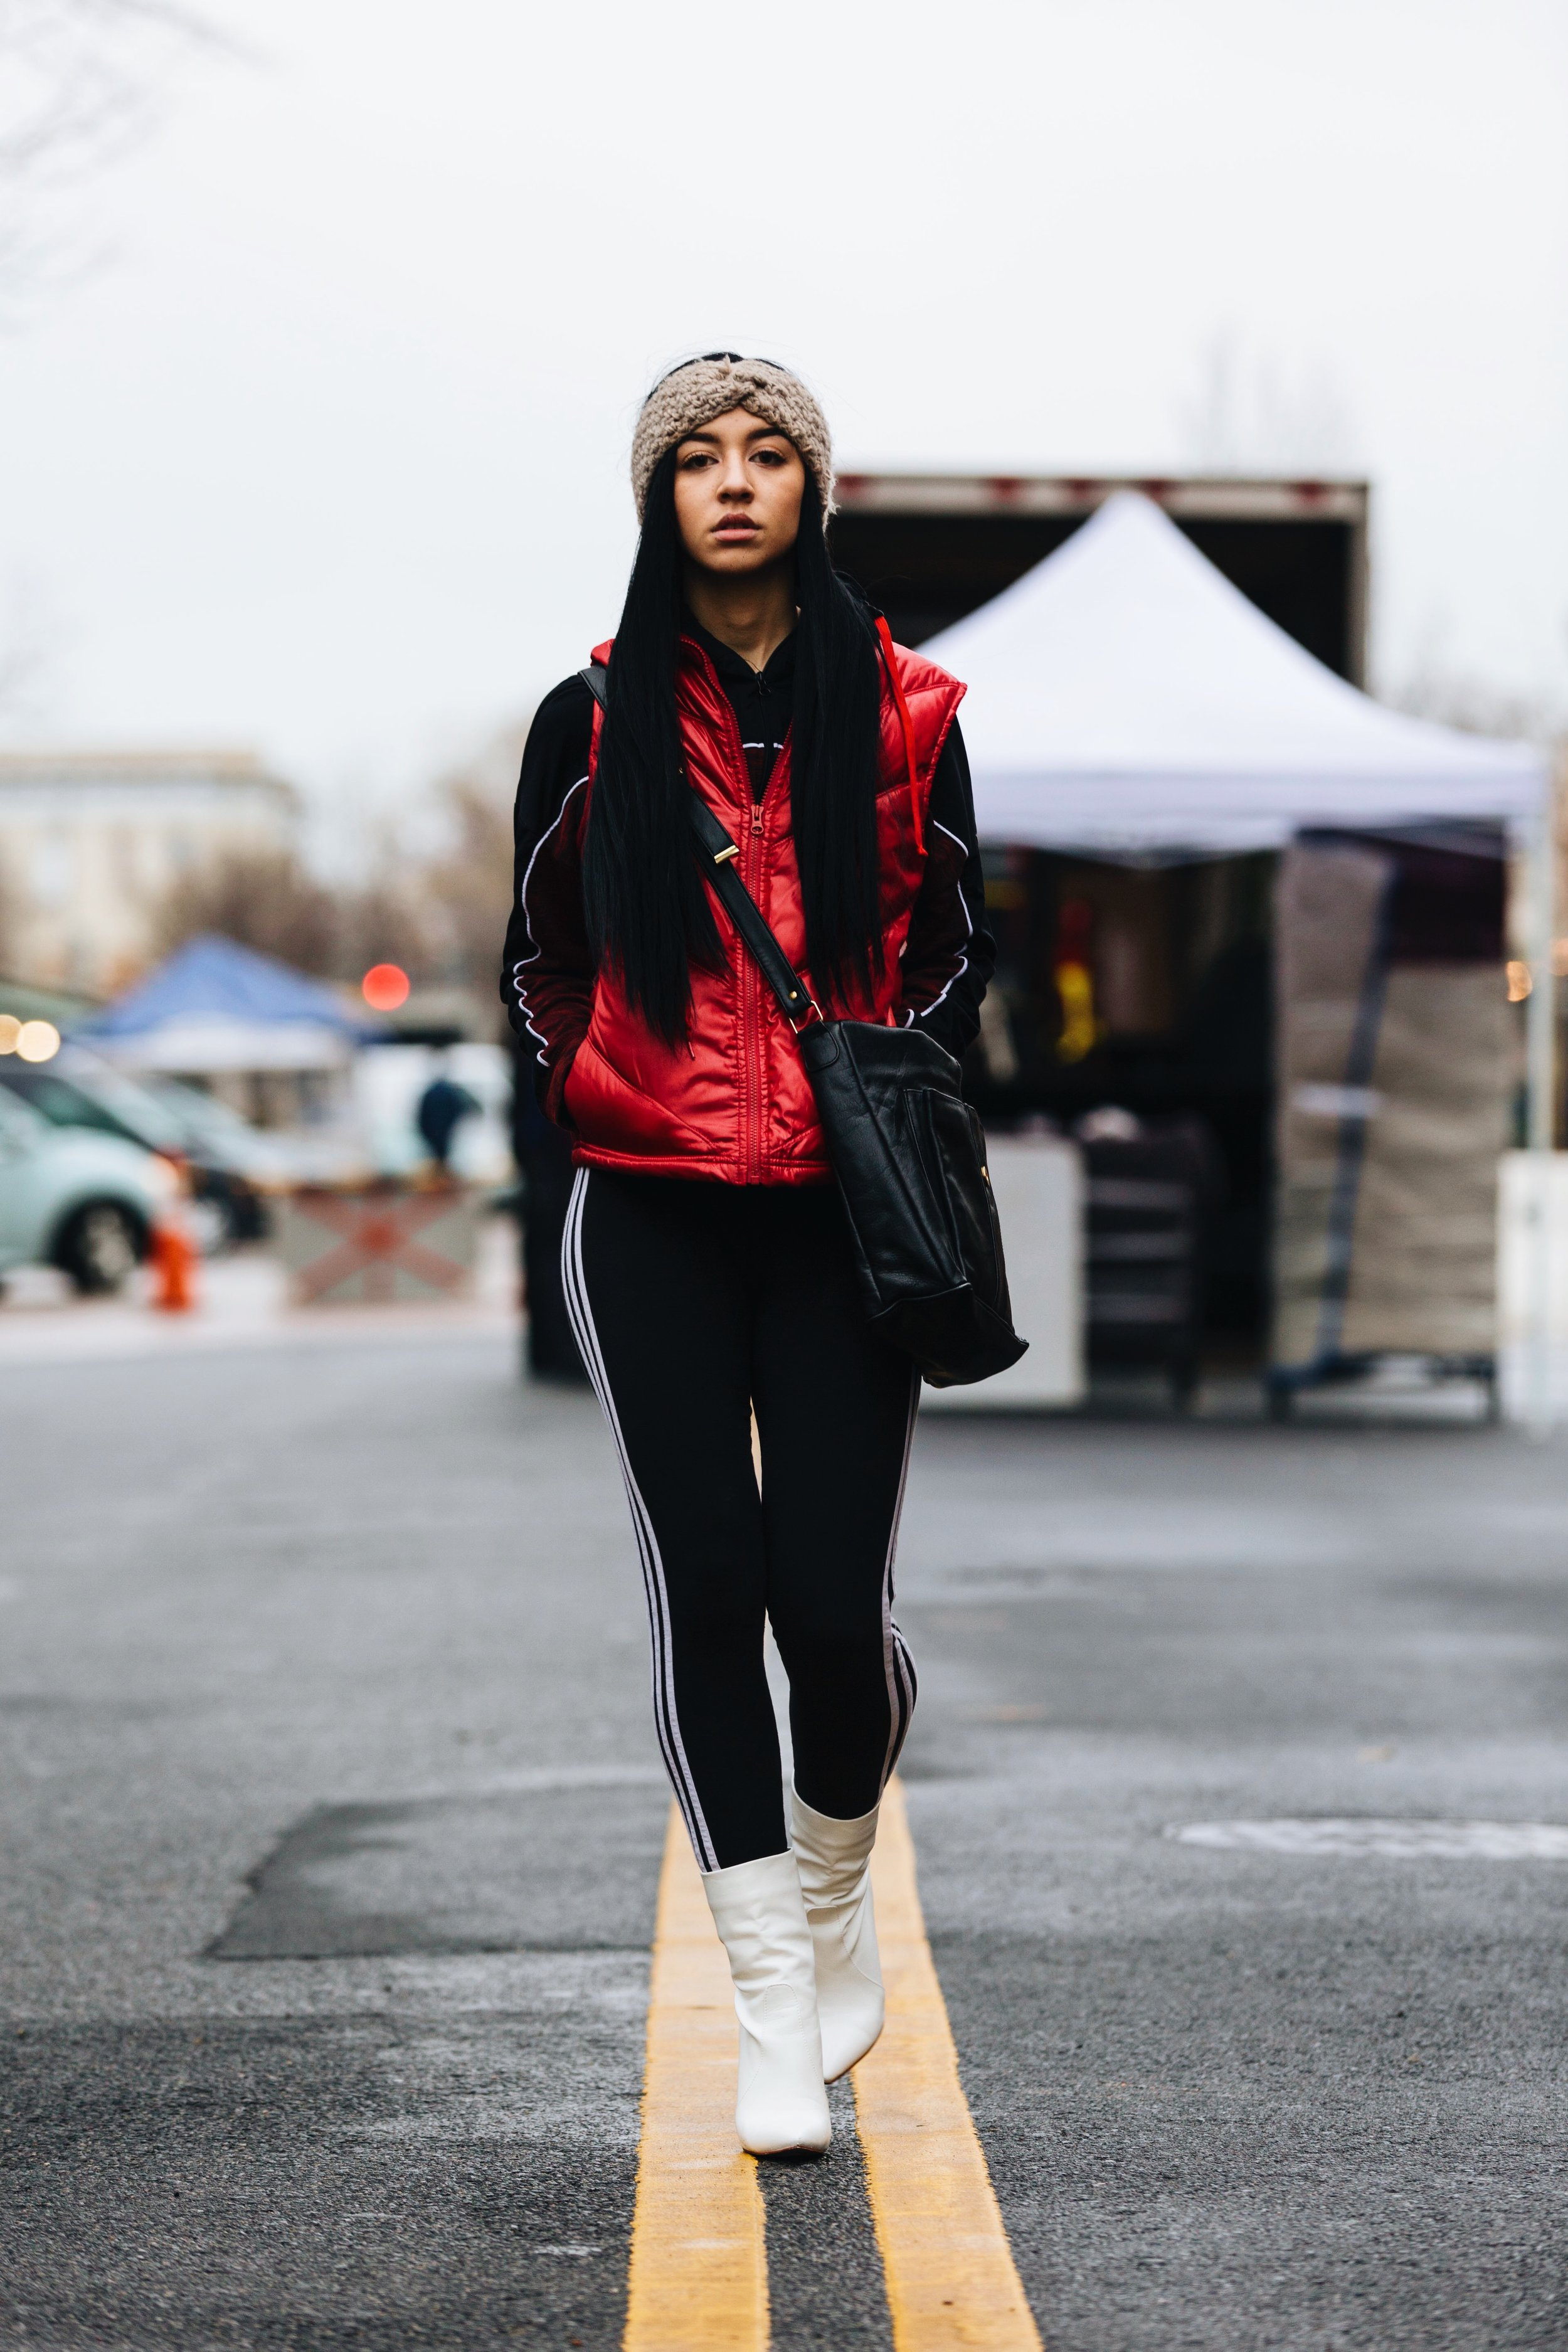 Photograph of DMV model Jazmyne Paris wearing a knitted headband, red puffer vest, black track jacket, Adidas leggings, black tote bag, and white boots captured by photographer The Creative Gentleman during Street Meet Dc Eastern Market DC meet up.